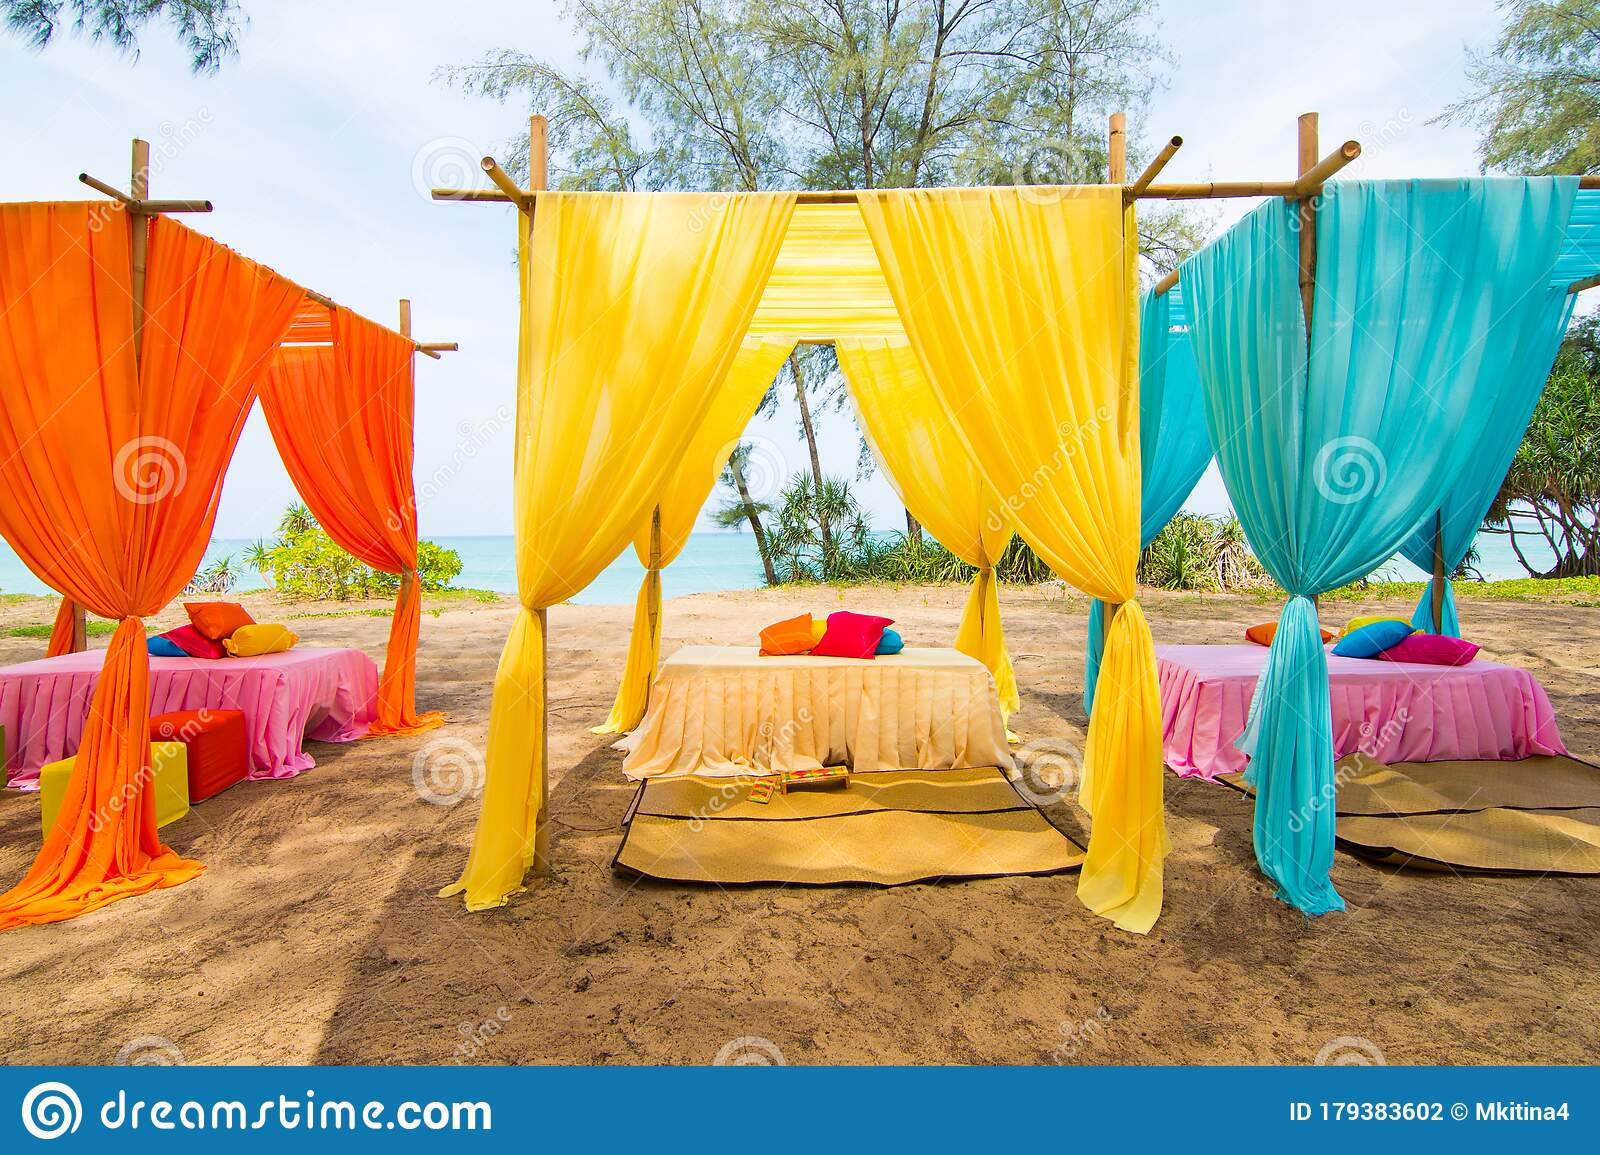 Colorful Wedding Venue Decor With Flower Outdoor Stock Photo Image Of Ceremony Blue 179383602